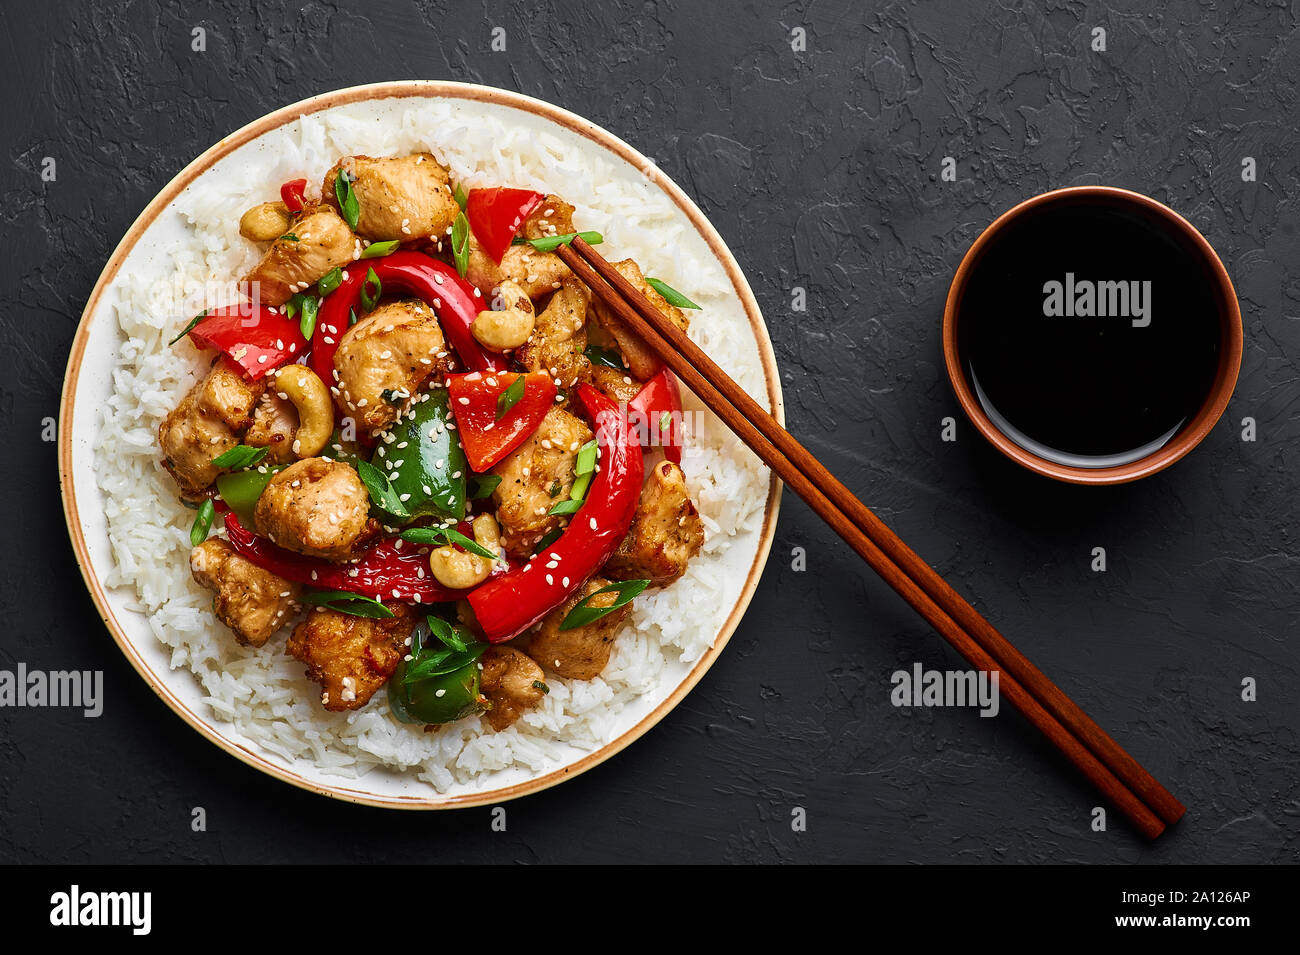 Schezwan Chicken Or Dragon Chicken With Basmati Rice At Black Slate Background Szechuan Chicken Is Popular Indo Chinese Spicy Dish With Chilli Pepper Stock Photo Alamy